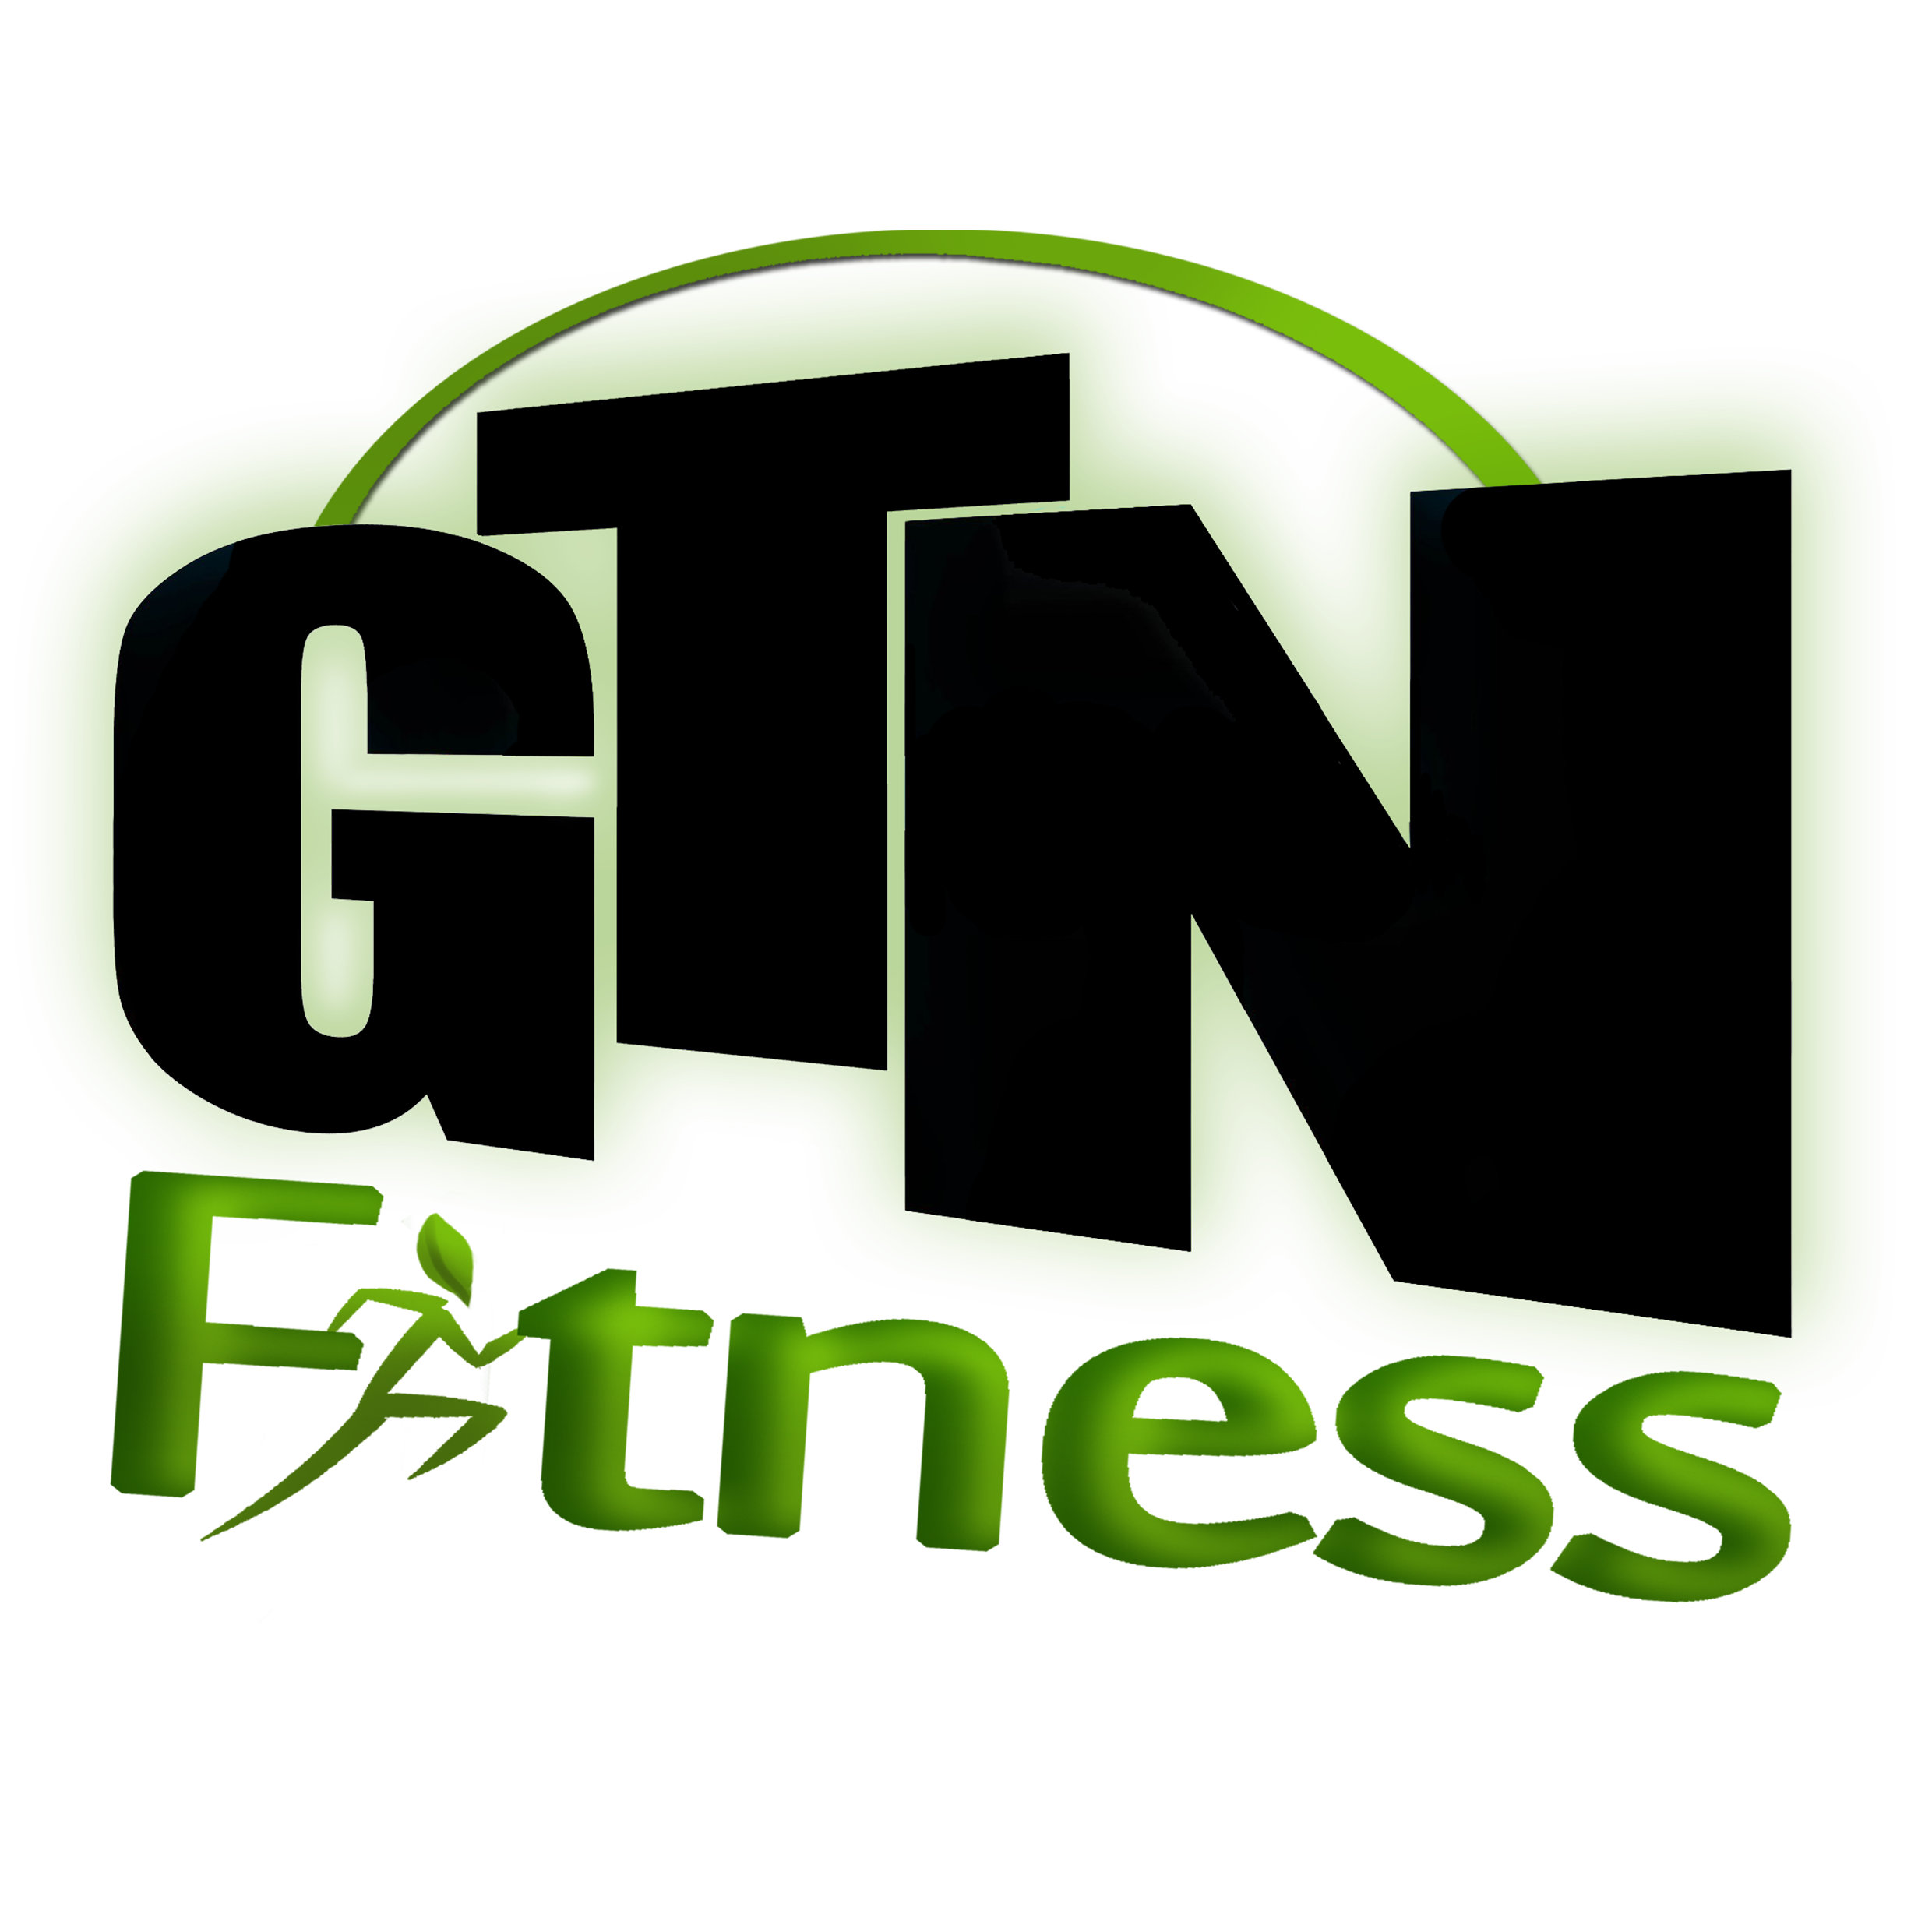 GTN Fitness - One of the Leading Bodyweight (Calisthenics) Training Specialist's In The UK. 1 to 1 Personal Training & Group Sessions in Maida Vale, Warwick Avenue, St Johns Wood, London and surrounding areas.